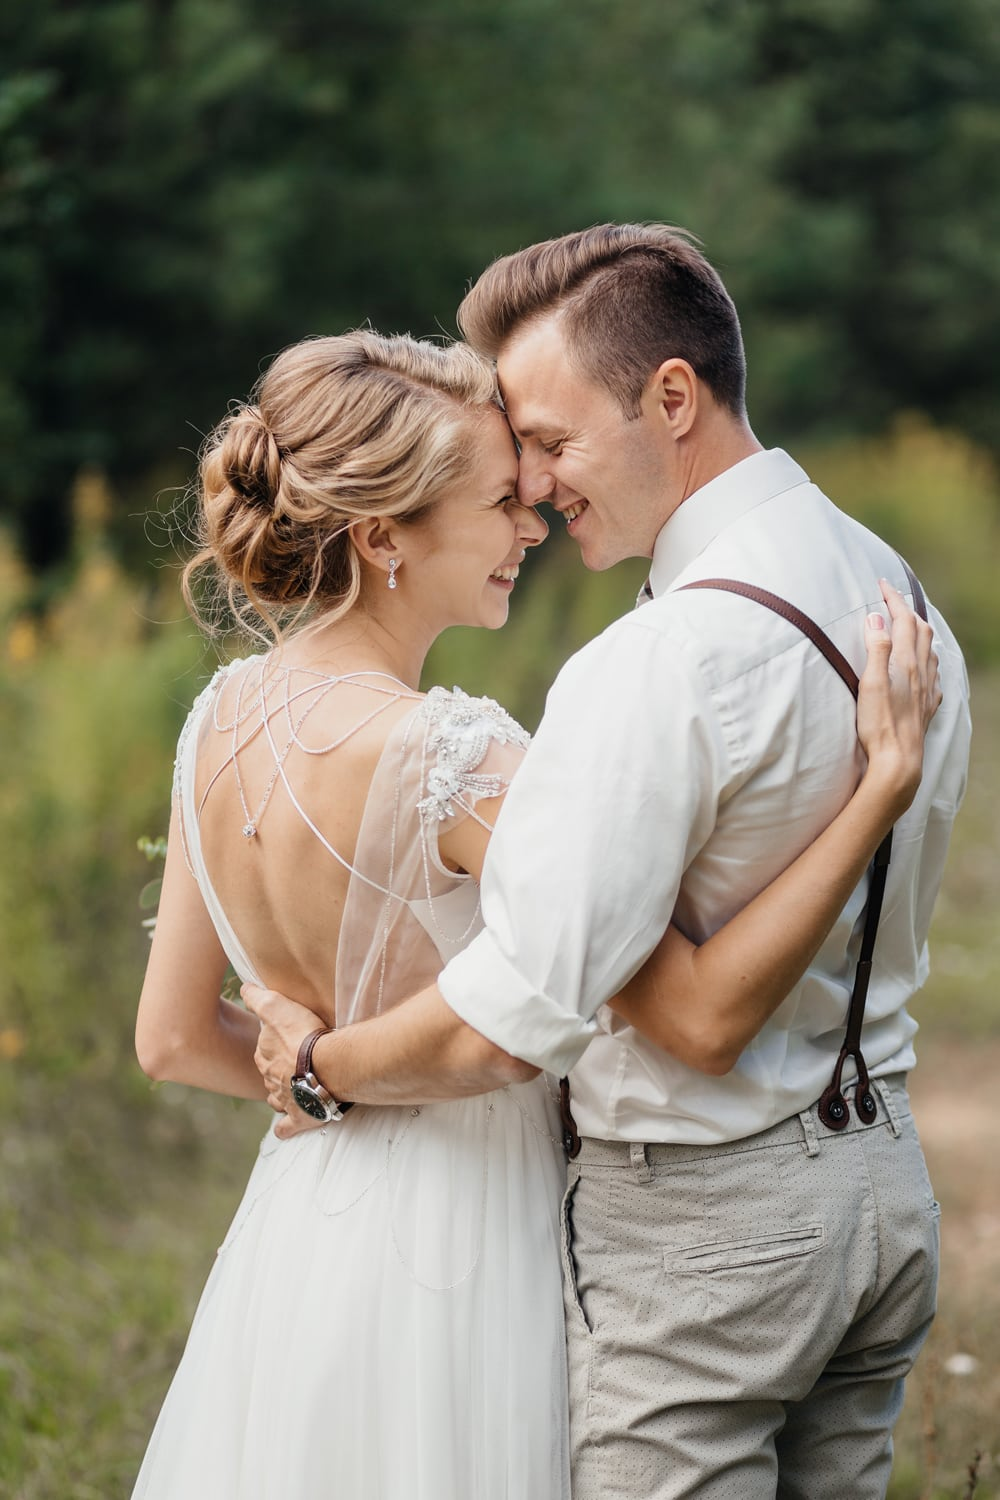 Rustic bride and groom touching each other with their foreheads during portrait photoshoot in the Catskills